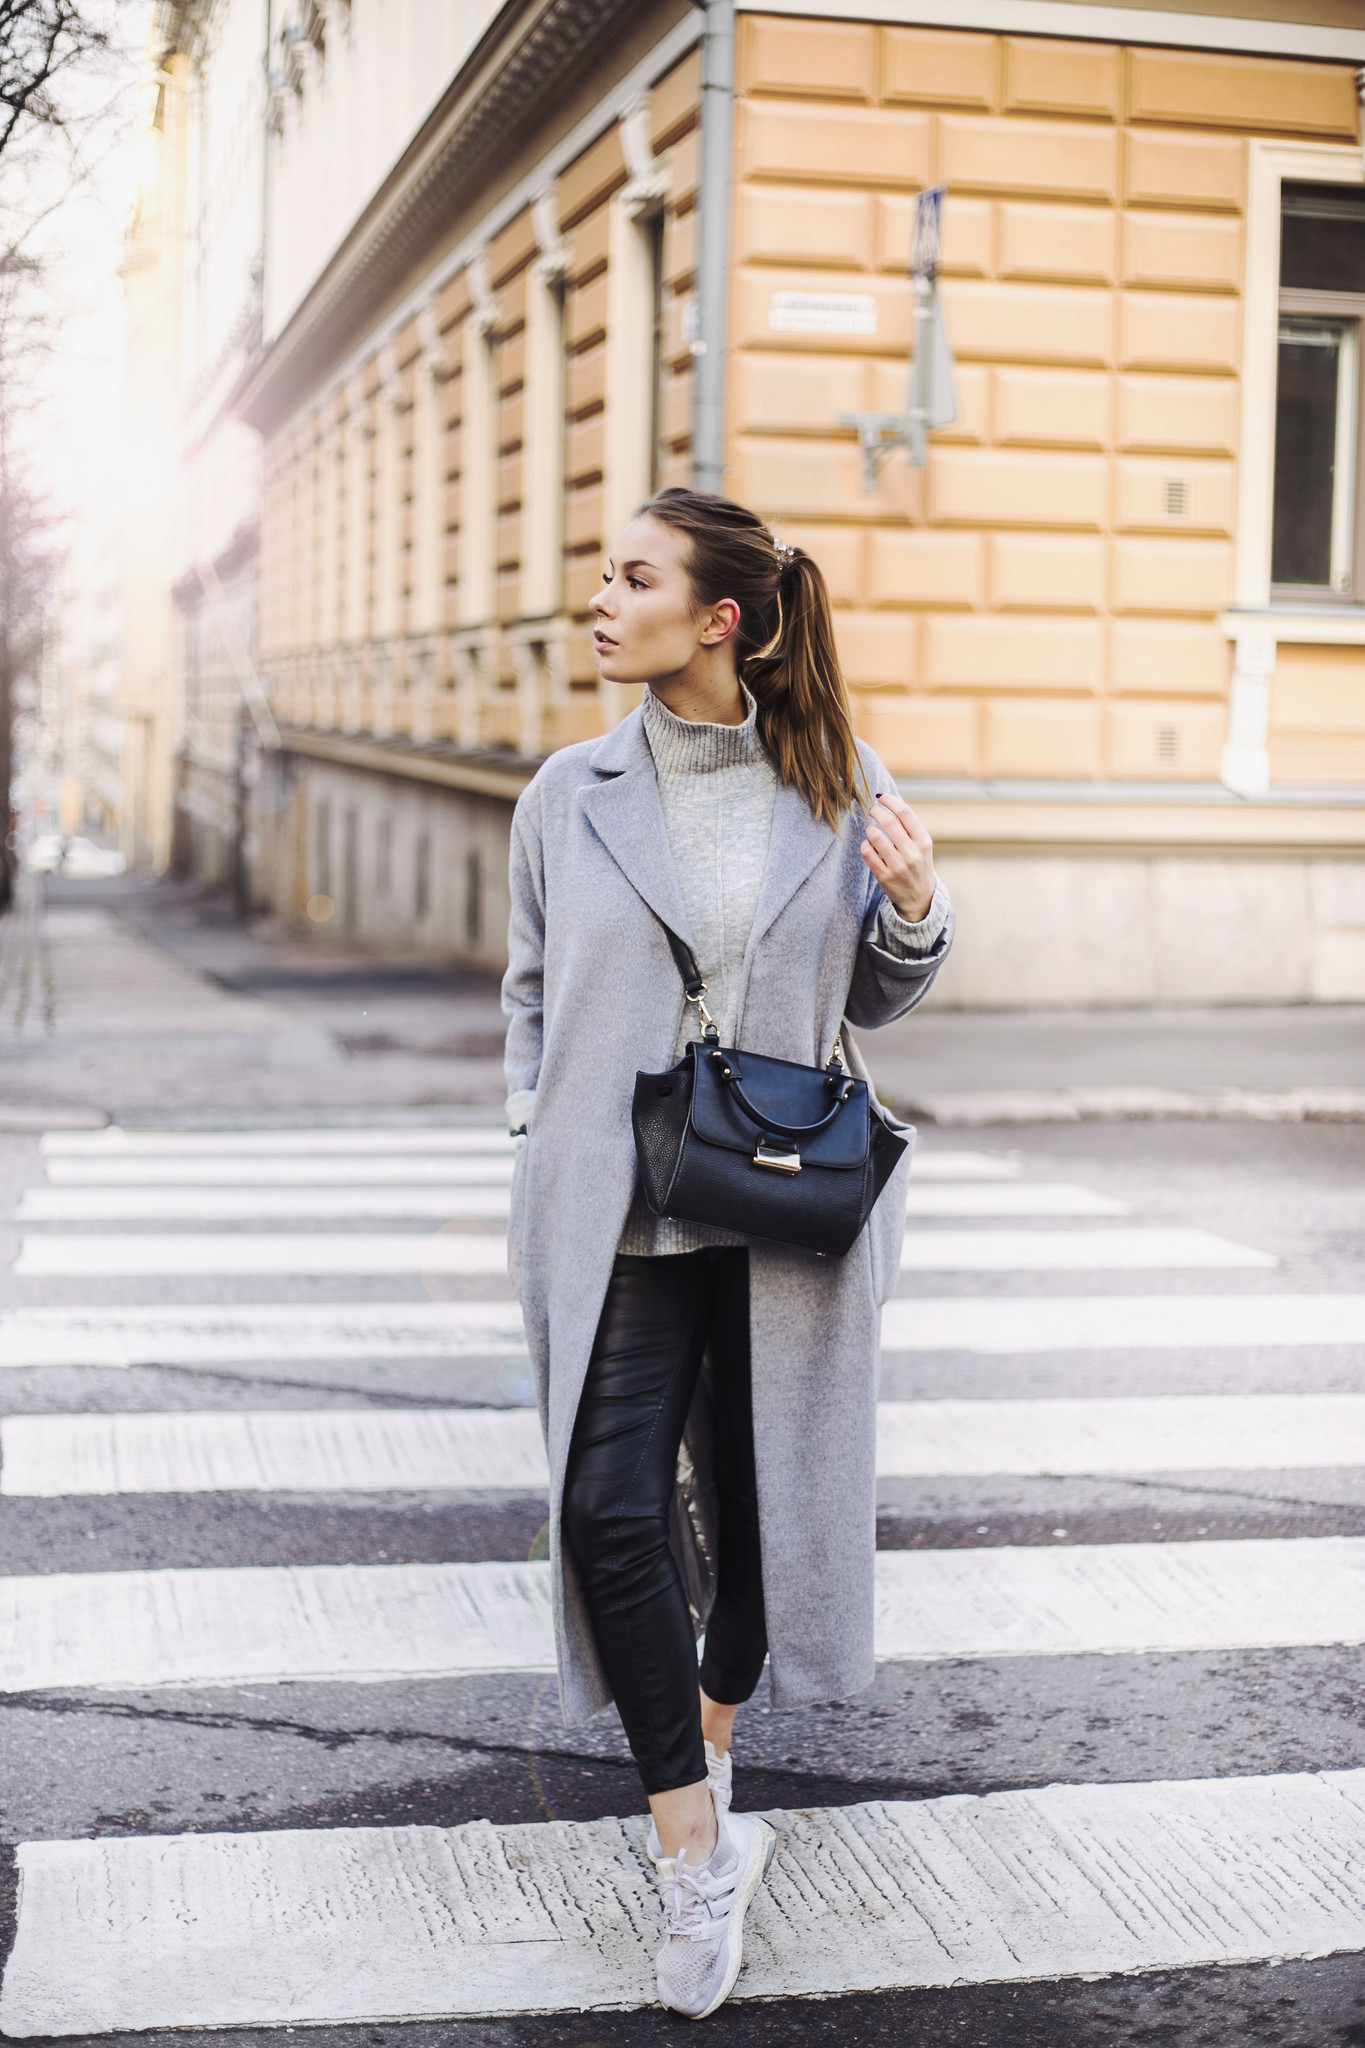 Pale grey items look great matched with black leather leggings as seen here worn by Katarina Lilius. The long coat trend is also huge this season; try getting a similar one to this from Topshop. Coat/Top: Topshop x Nelly*, Trousers: H&M, Sneakers: Adidas, Bag: Mango.